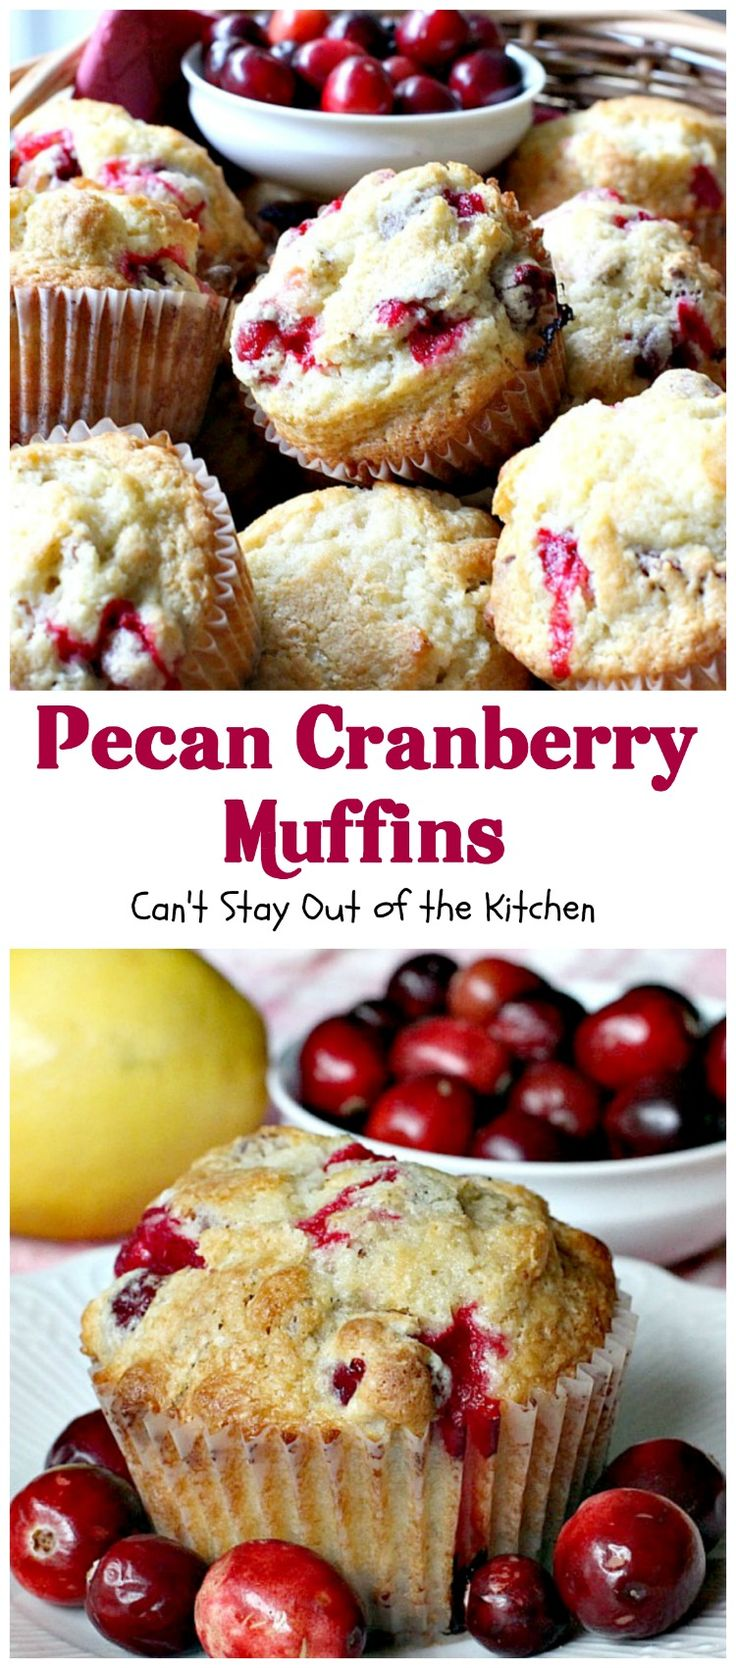 These scrumptious muffins are filled with cranberries, lemon, and pecans. They make such a great treat for a holiday breakfast when cranberries are easily obtainable. |  Can't Stay Out of the Kitchen